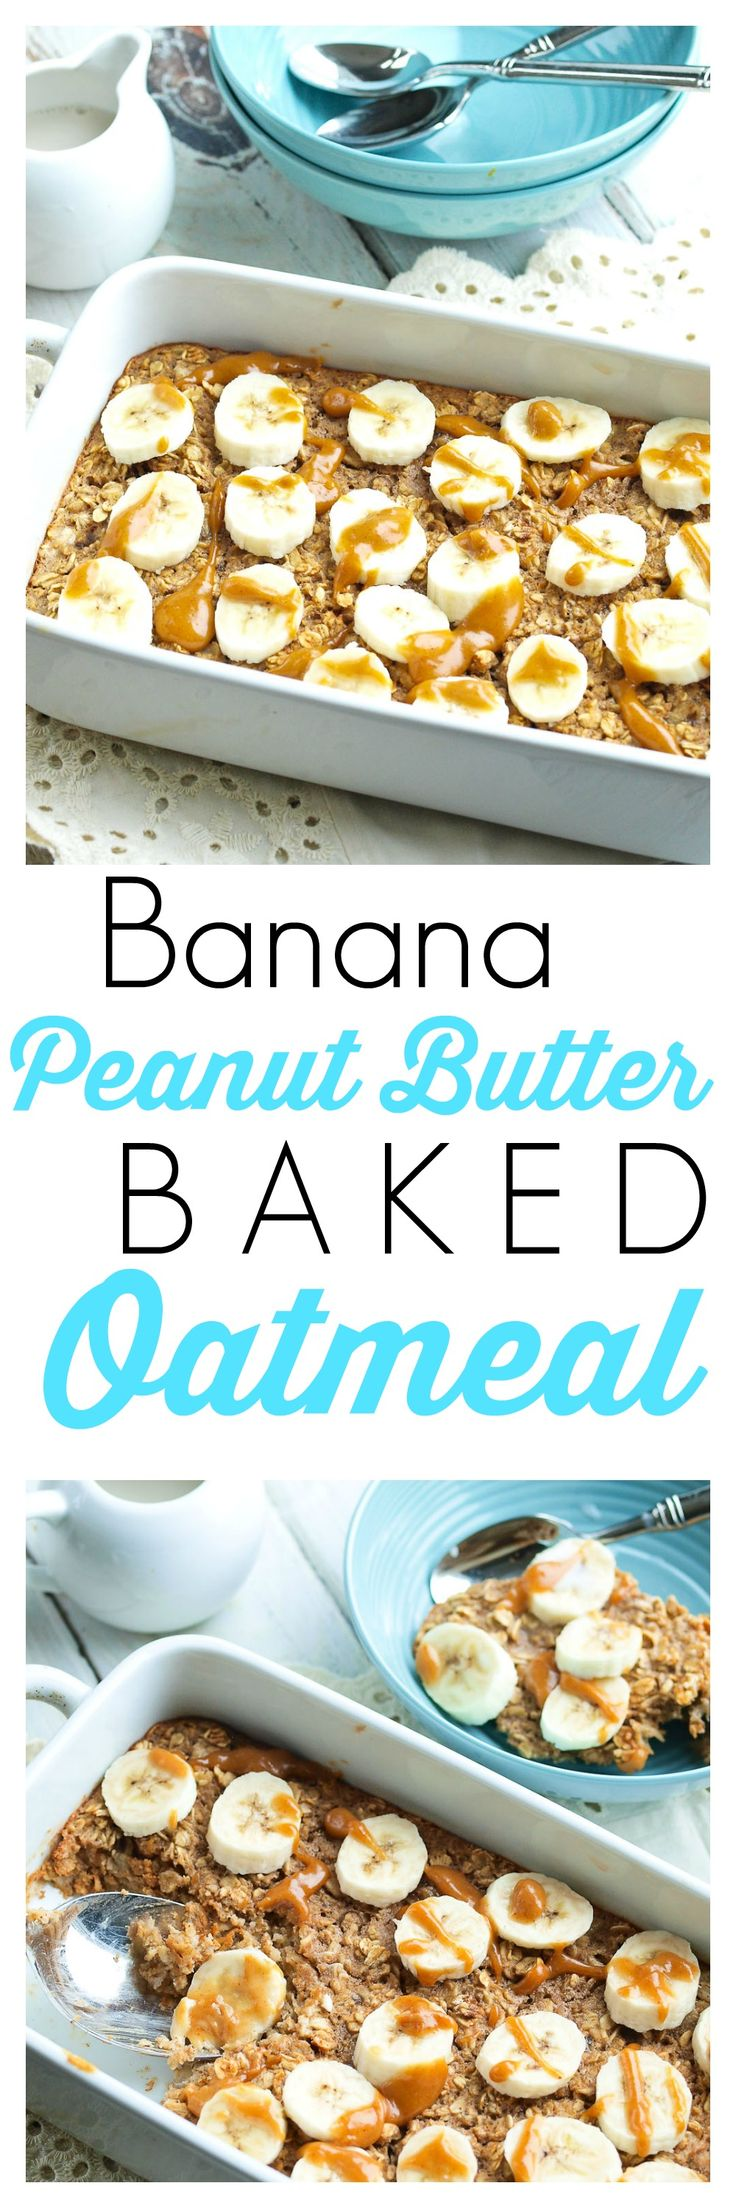 Banana Peanut Butter Baked Oatmeal Recipe.  This is a healthy breakfast recipe that is perfect for chilly mornings! Low sugar, gluten-free, and dairy-free.